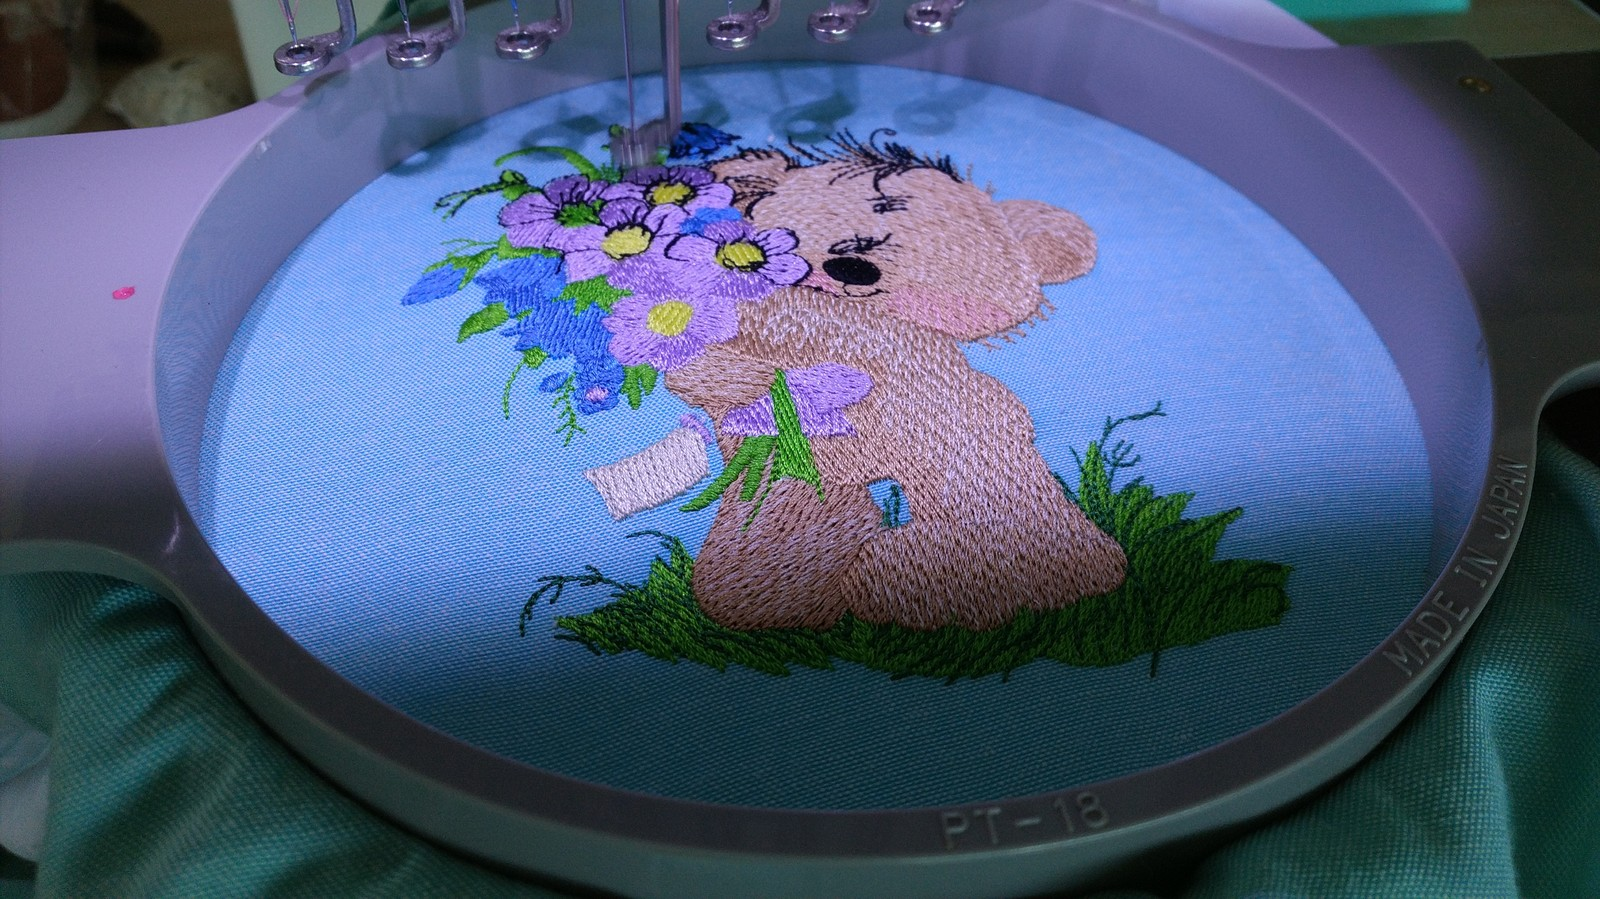 Embroidering teddy bear bouquet design